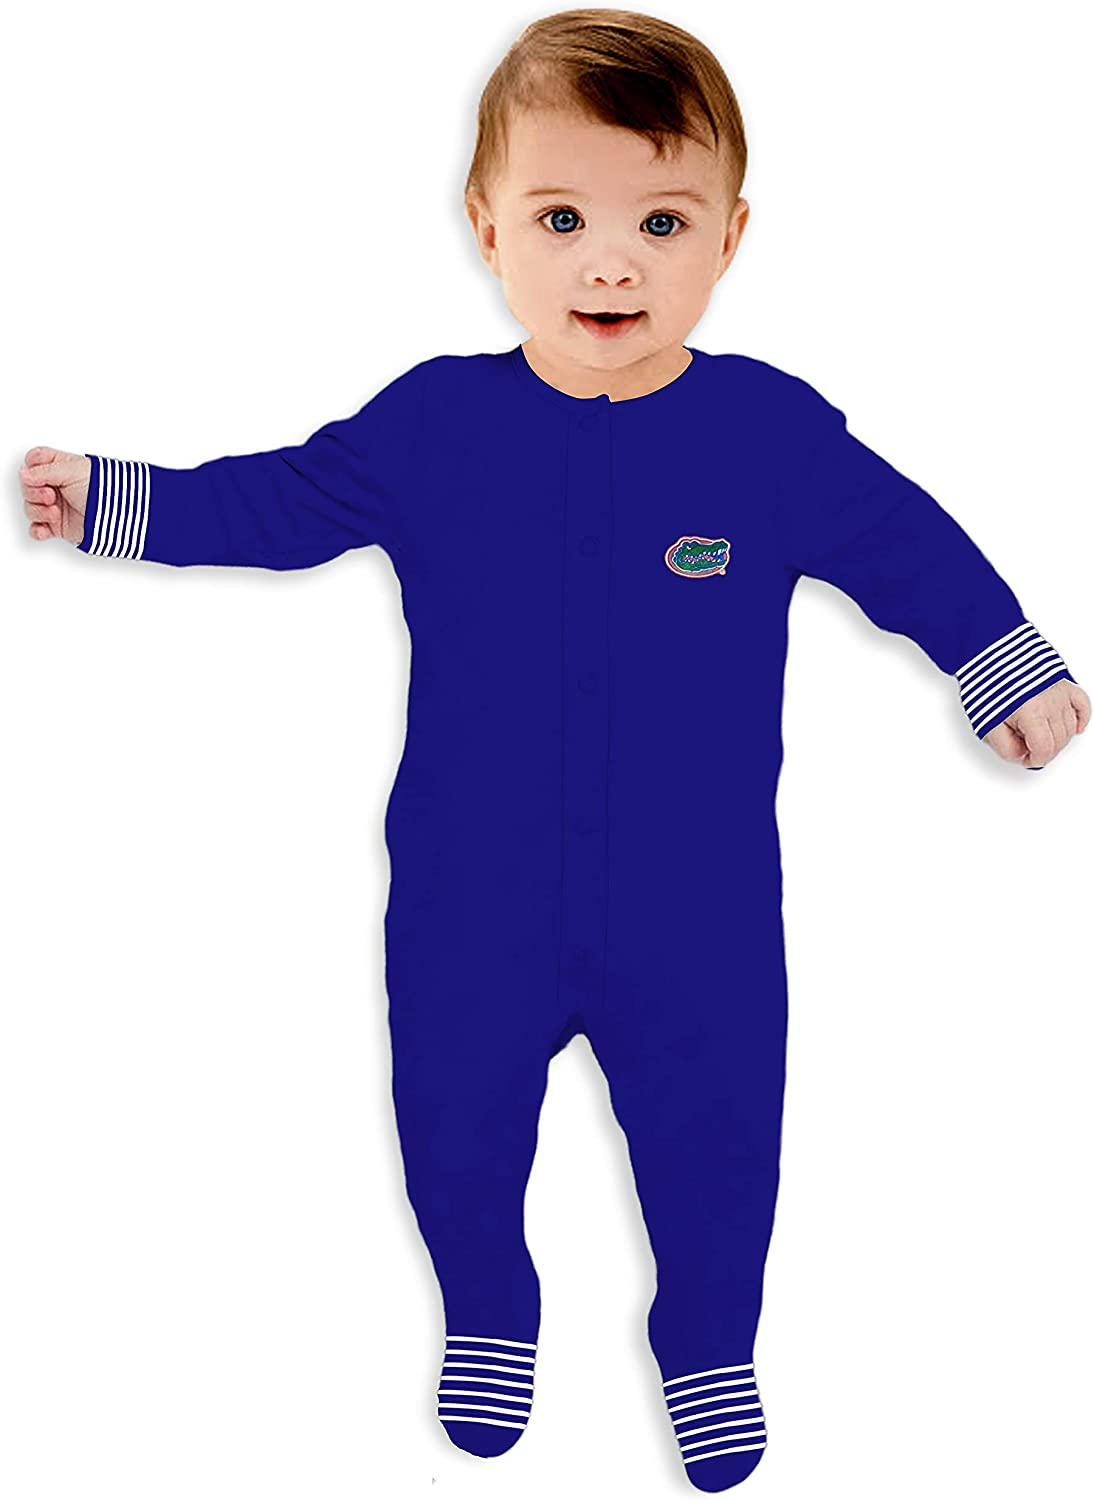 Direct sale supreme of manufacturer Two Feet Ahead - Babies Long-Sleeve Footies Bab College Style